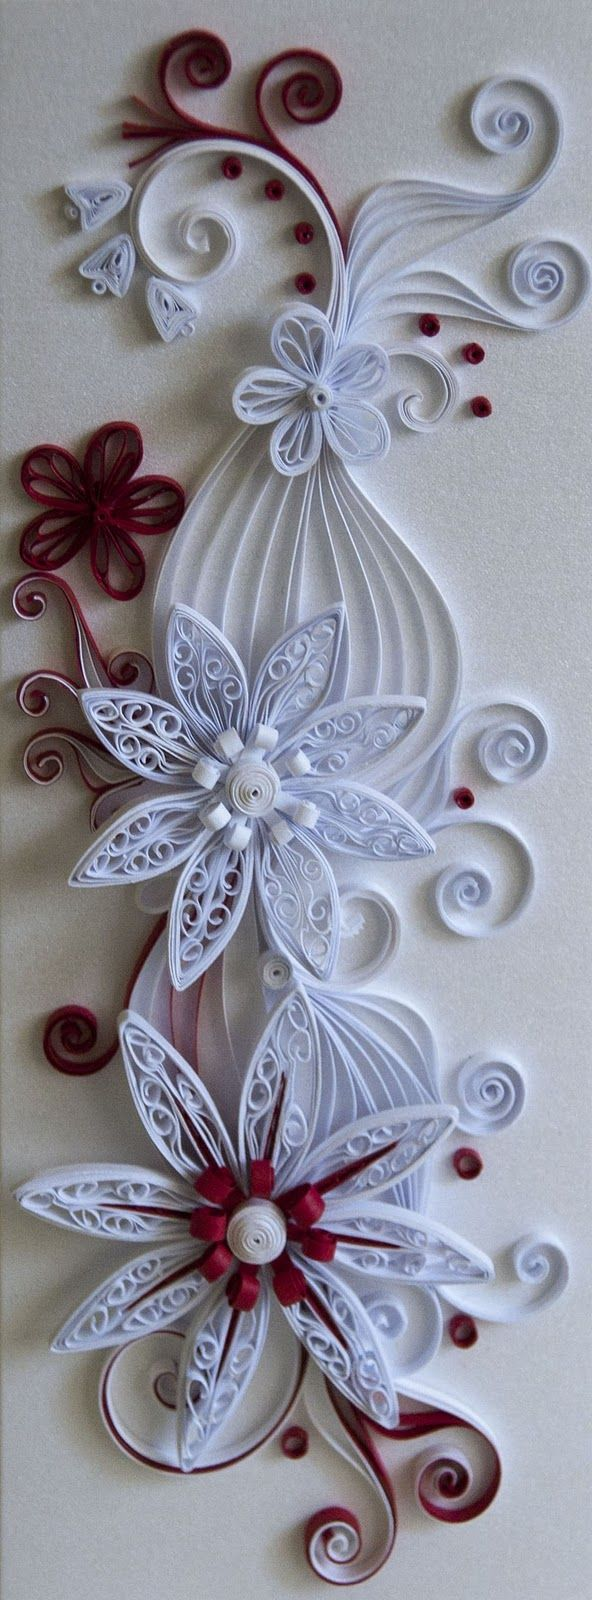 Neli Quilling Art: Quilling cards - old ideas with new colors